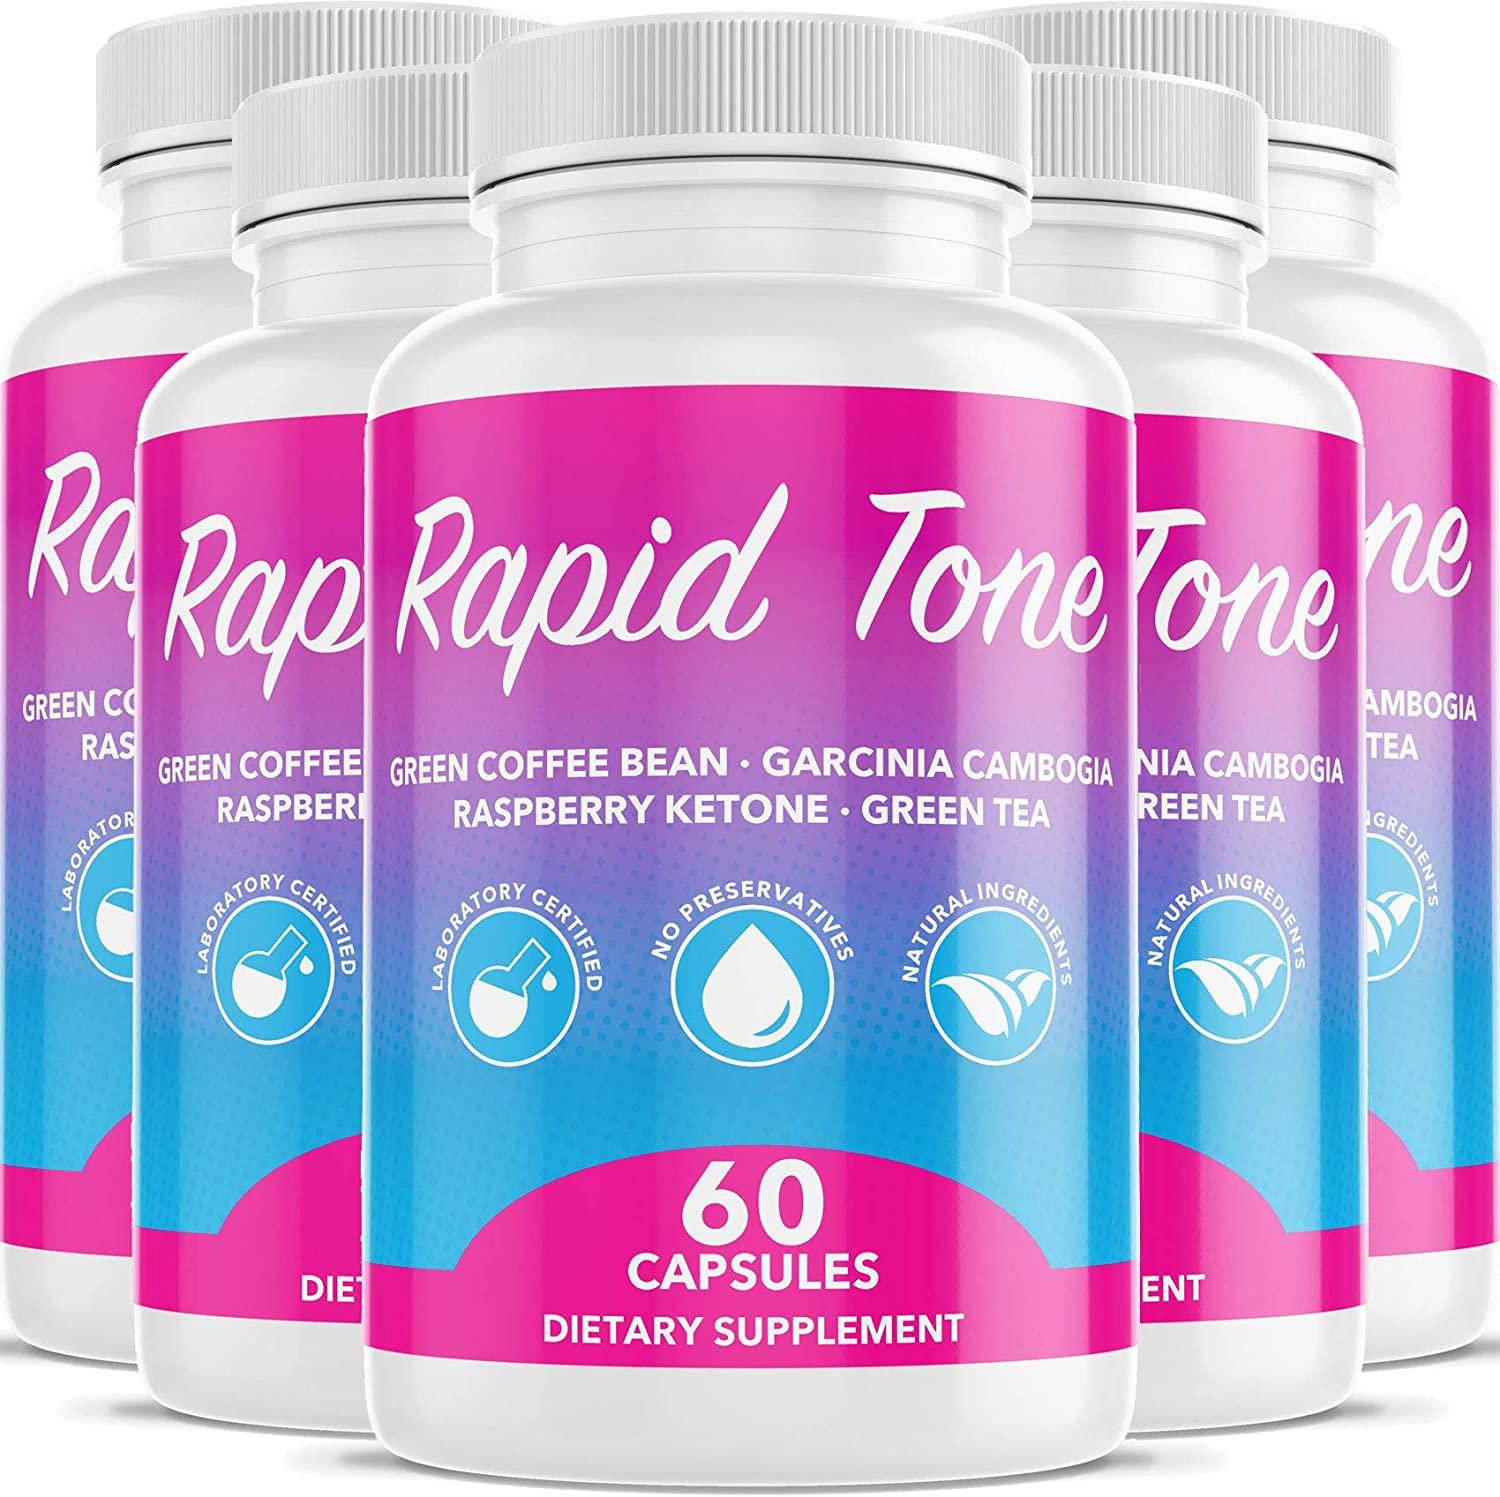 Rapid Tone Weight Loss Pills Supplement – Burn Fat Quicker – Carb Blocker, Appetite Suppressant, Fat Burner – Natural Thermogenic Extreme Diet Fast WeightLoss for Women Men 5 Month Supply